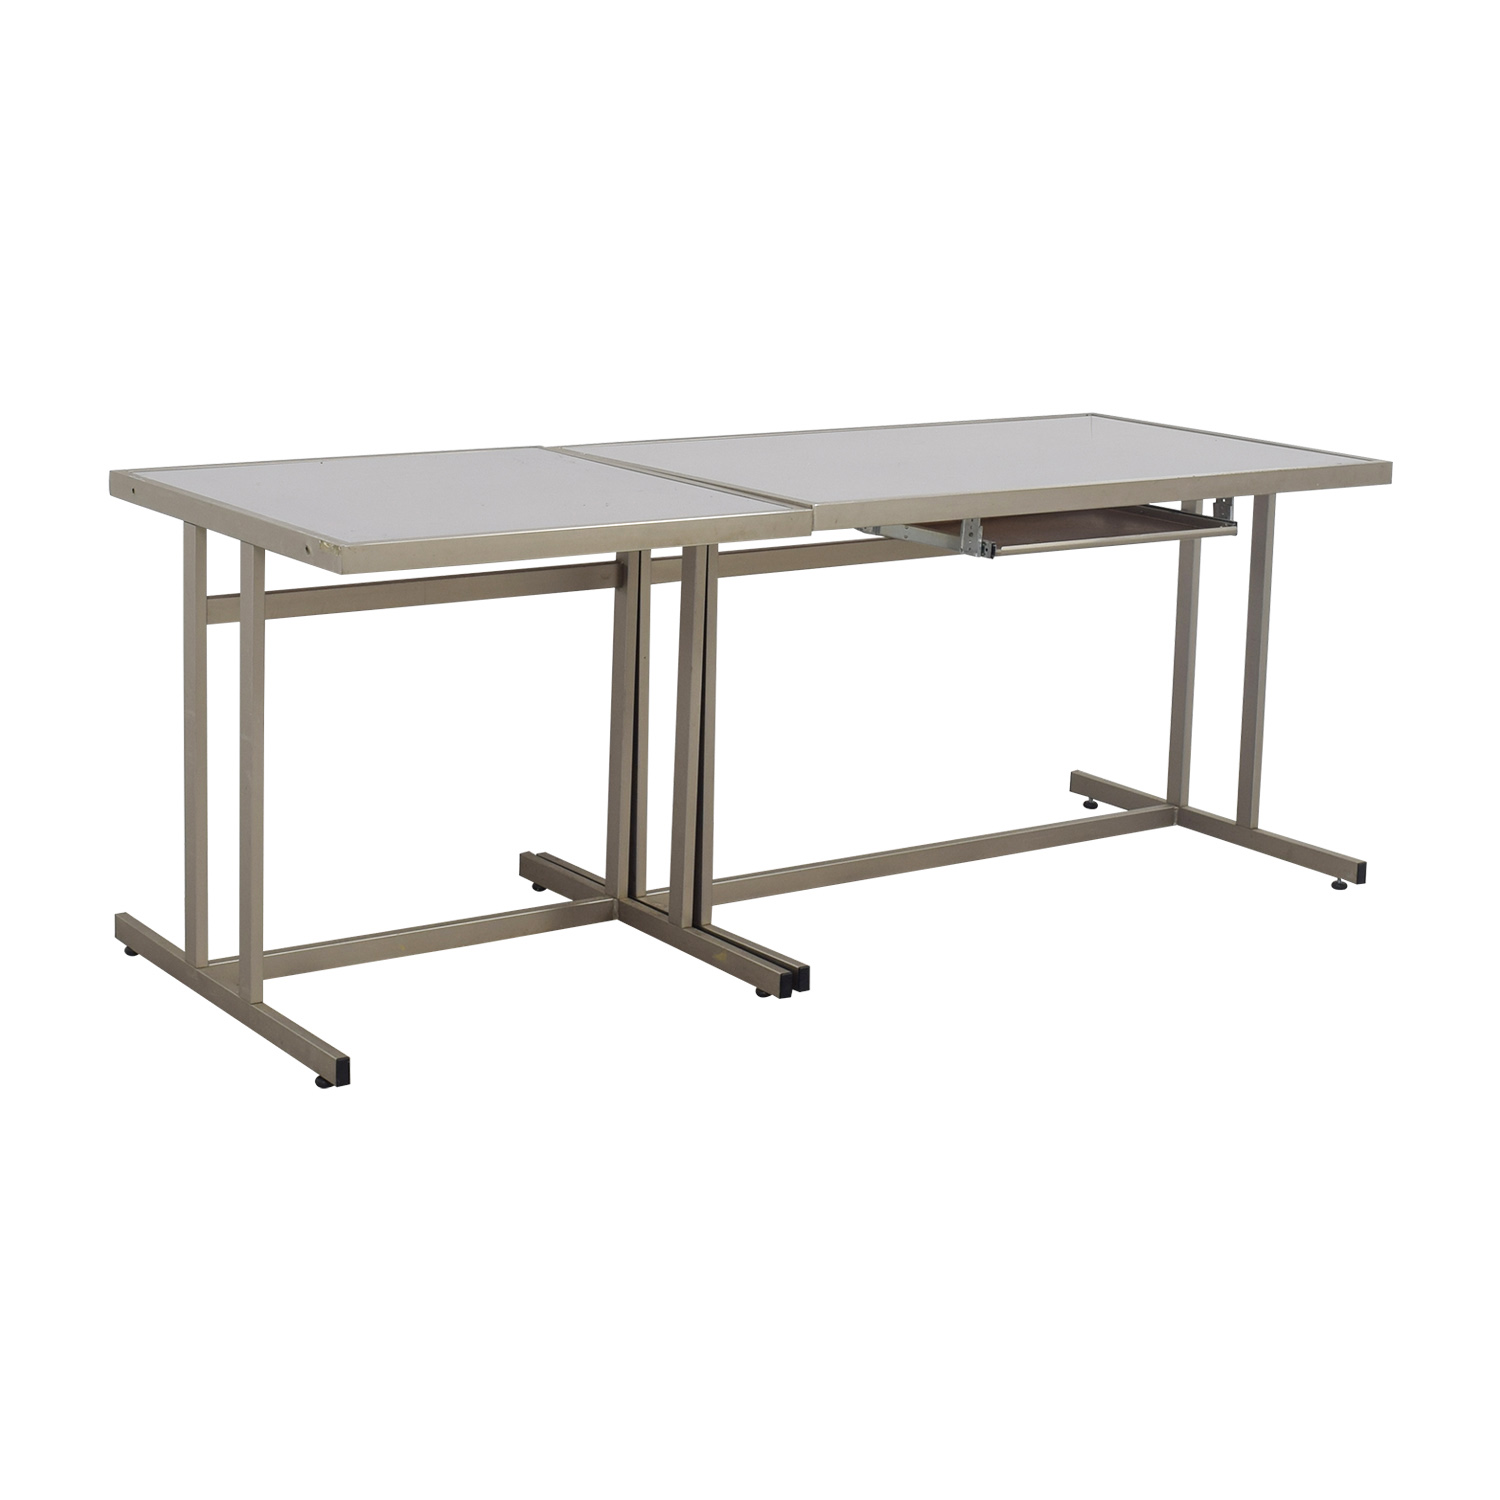 ... West Elm Modern Desk With Pull Out Tray / Tables ...